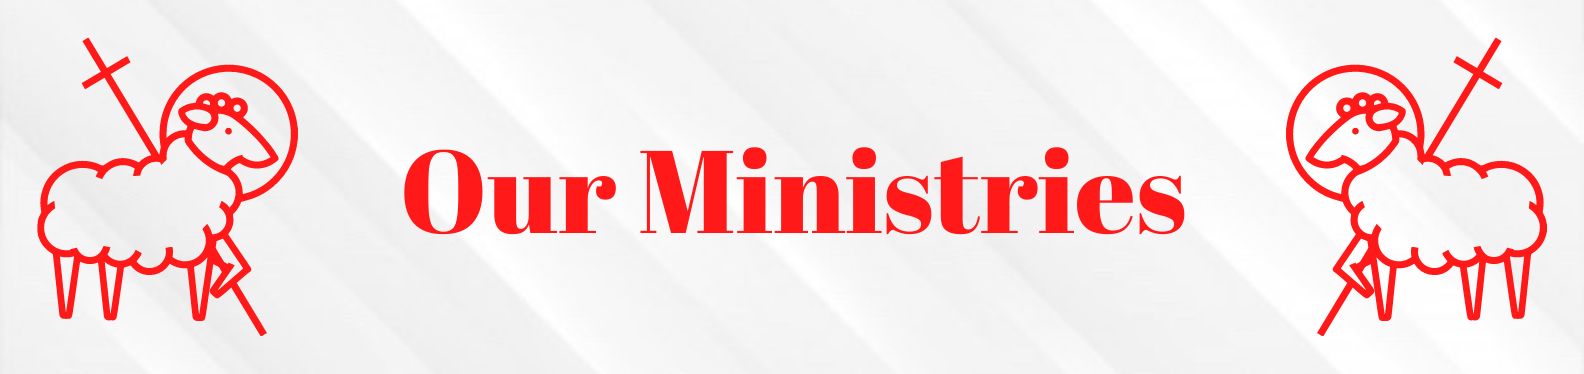 The word Ministries written in red writing with a clipart image of a lamb with a spear in a red outline one on each side of the word.